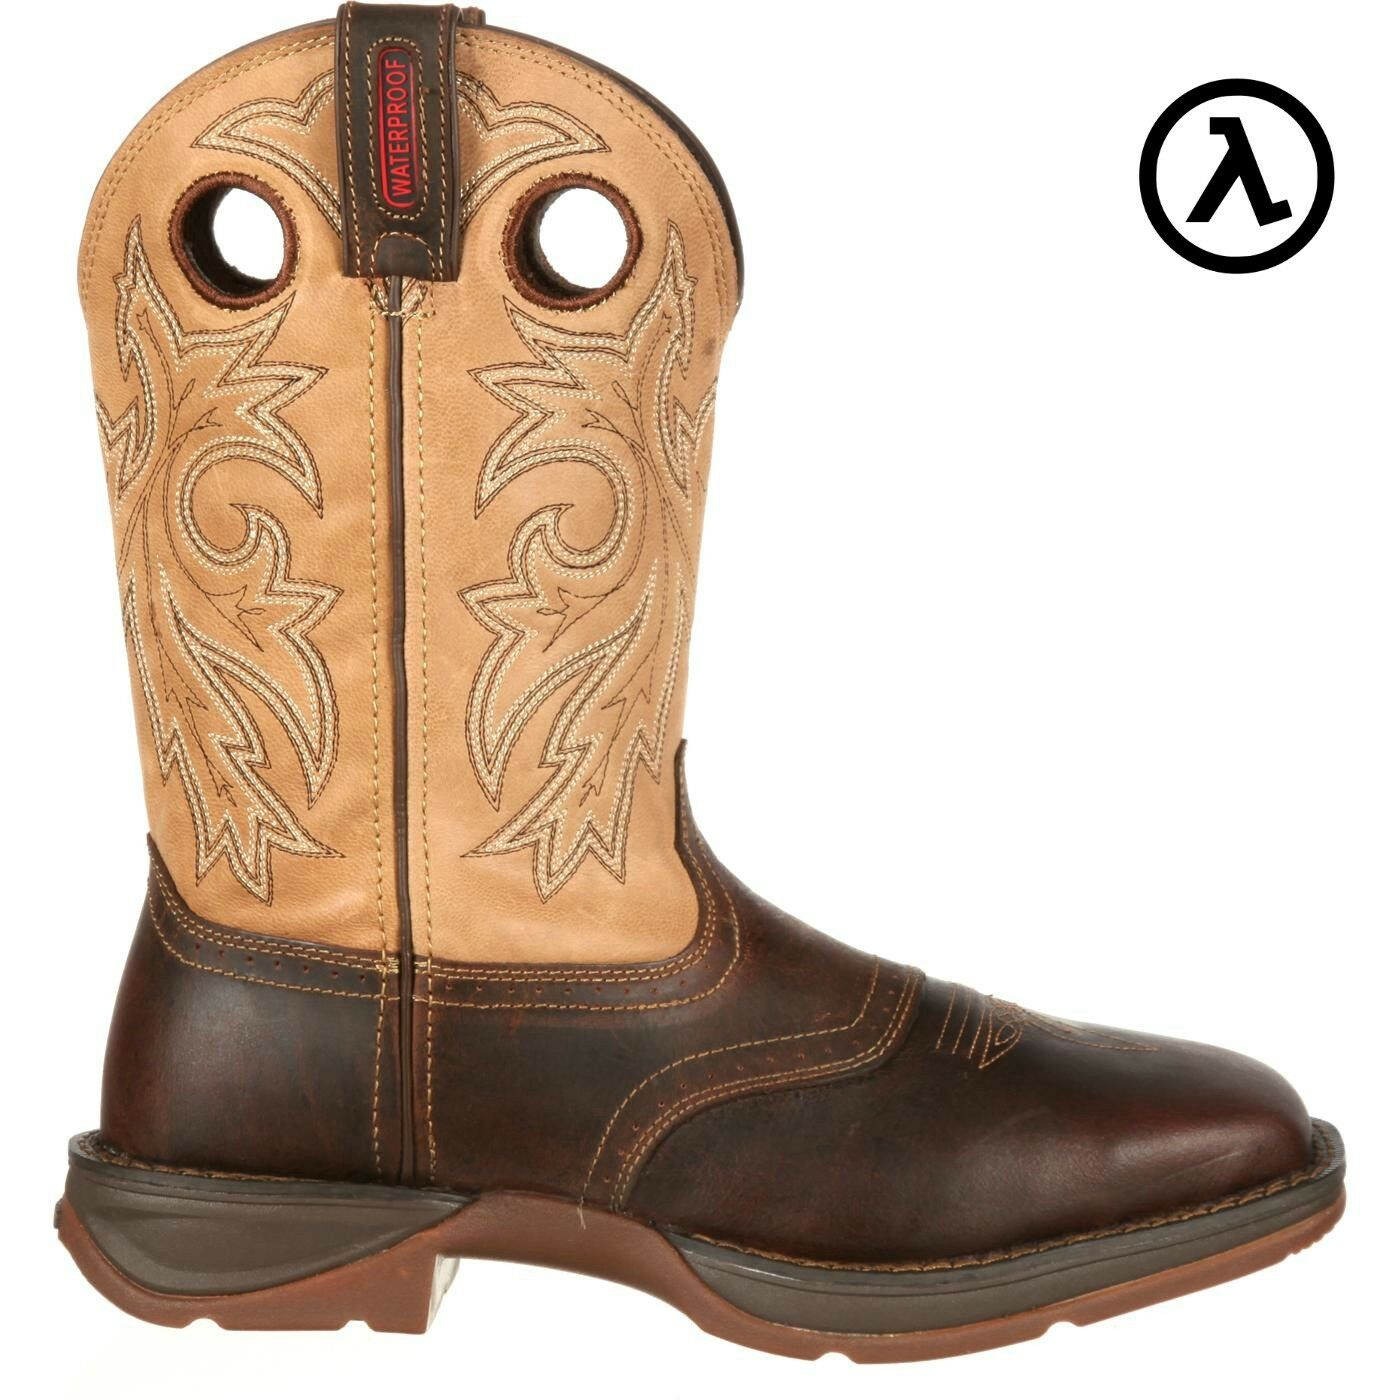 REBEL BY DURANGO SADDLE UP WESTERN BOOT DB4442 - ALL SIZES - NEW